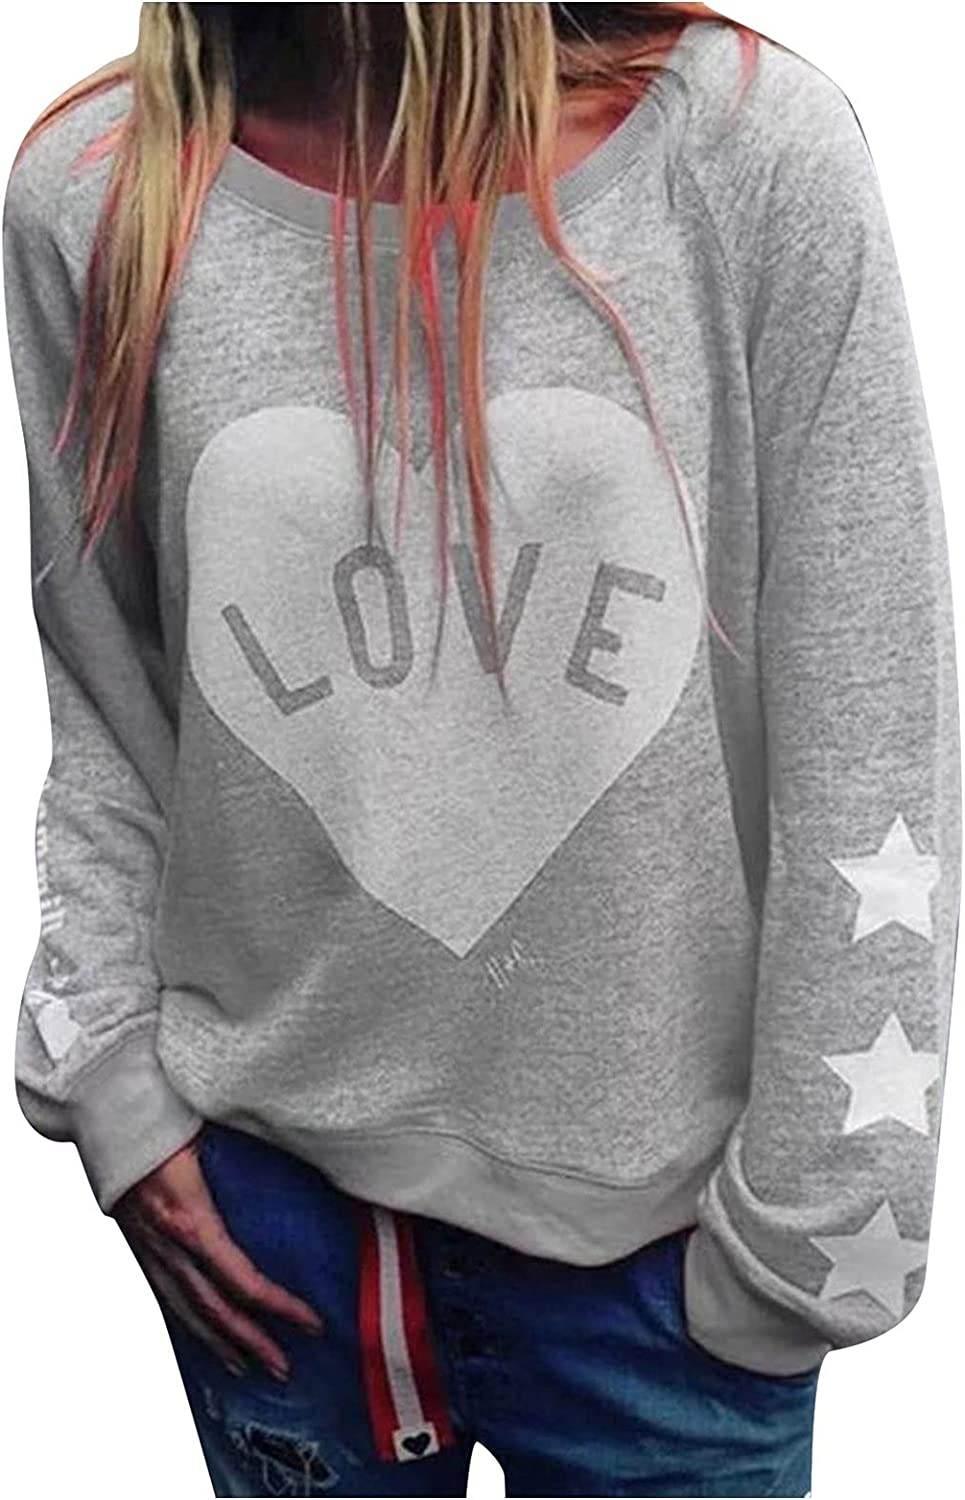 Crewneck Sweatshirt Women Cute Heart Solid Graphic Loose Oversized Pullover Casual Long Sleeve Crop Top Plus Size